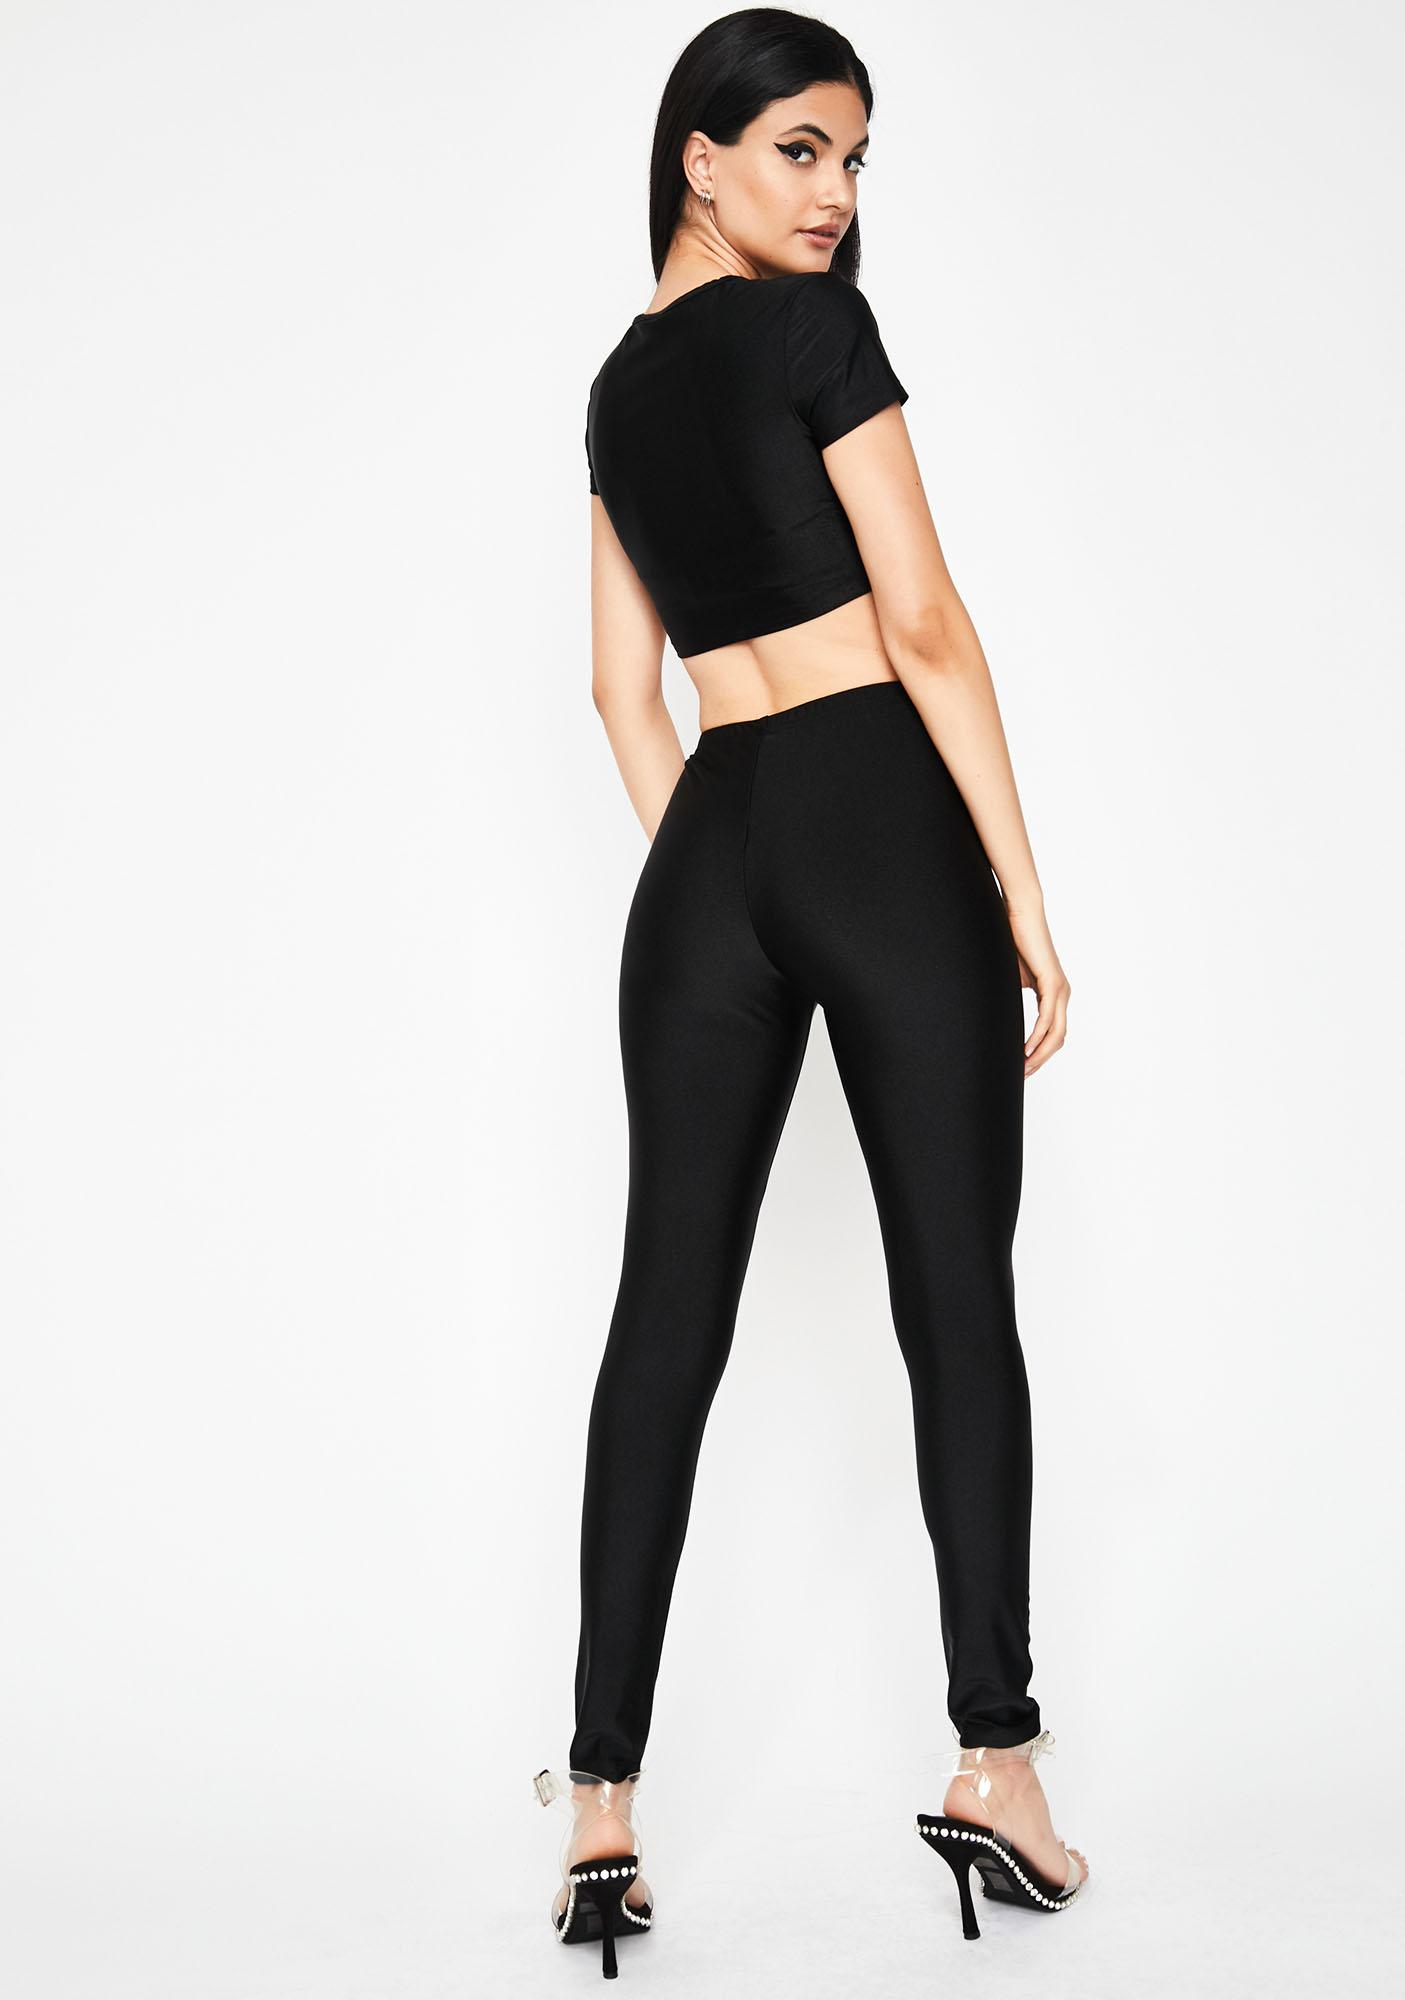 Grown N' Sexy Stretch Leggings